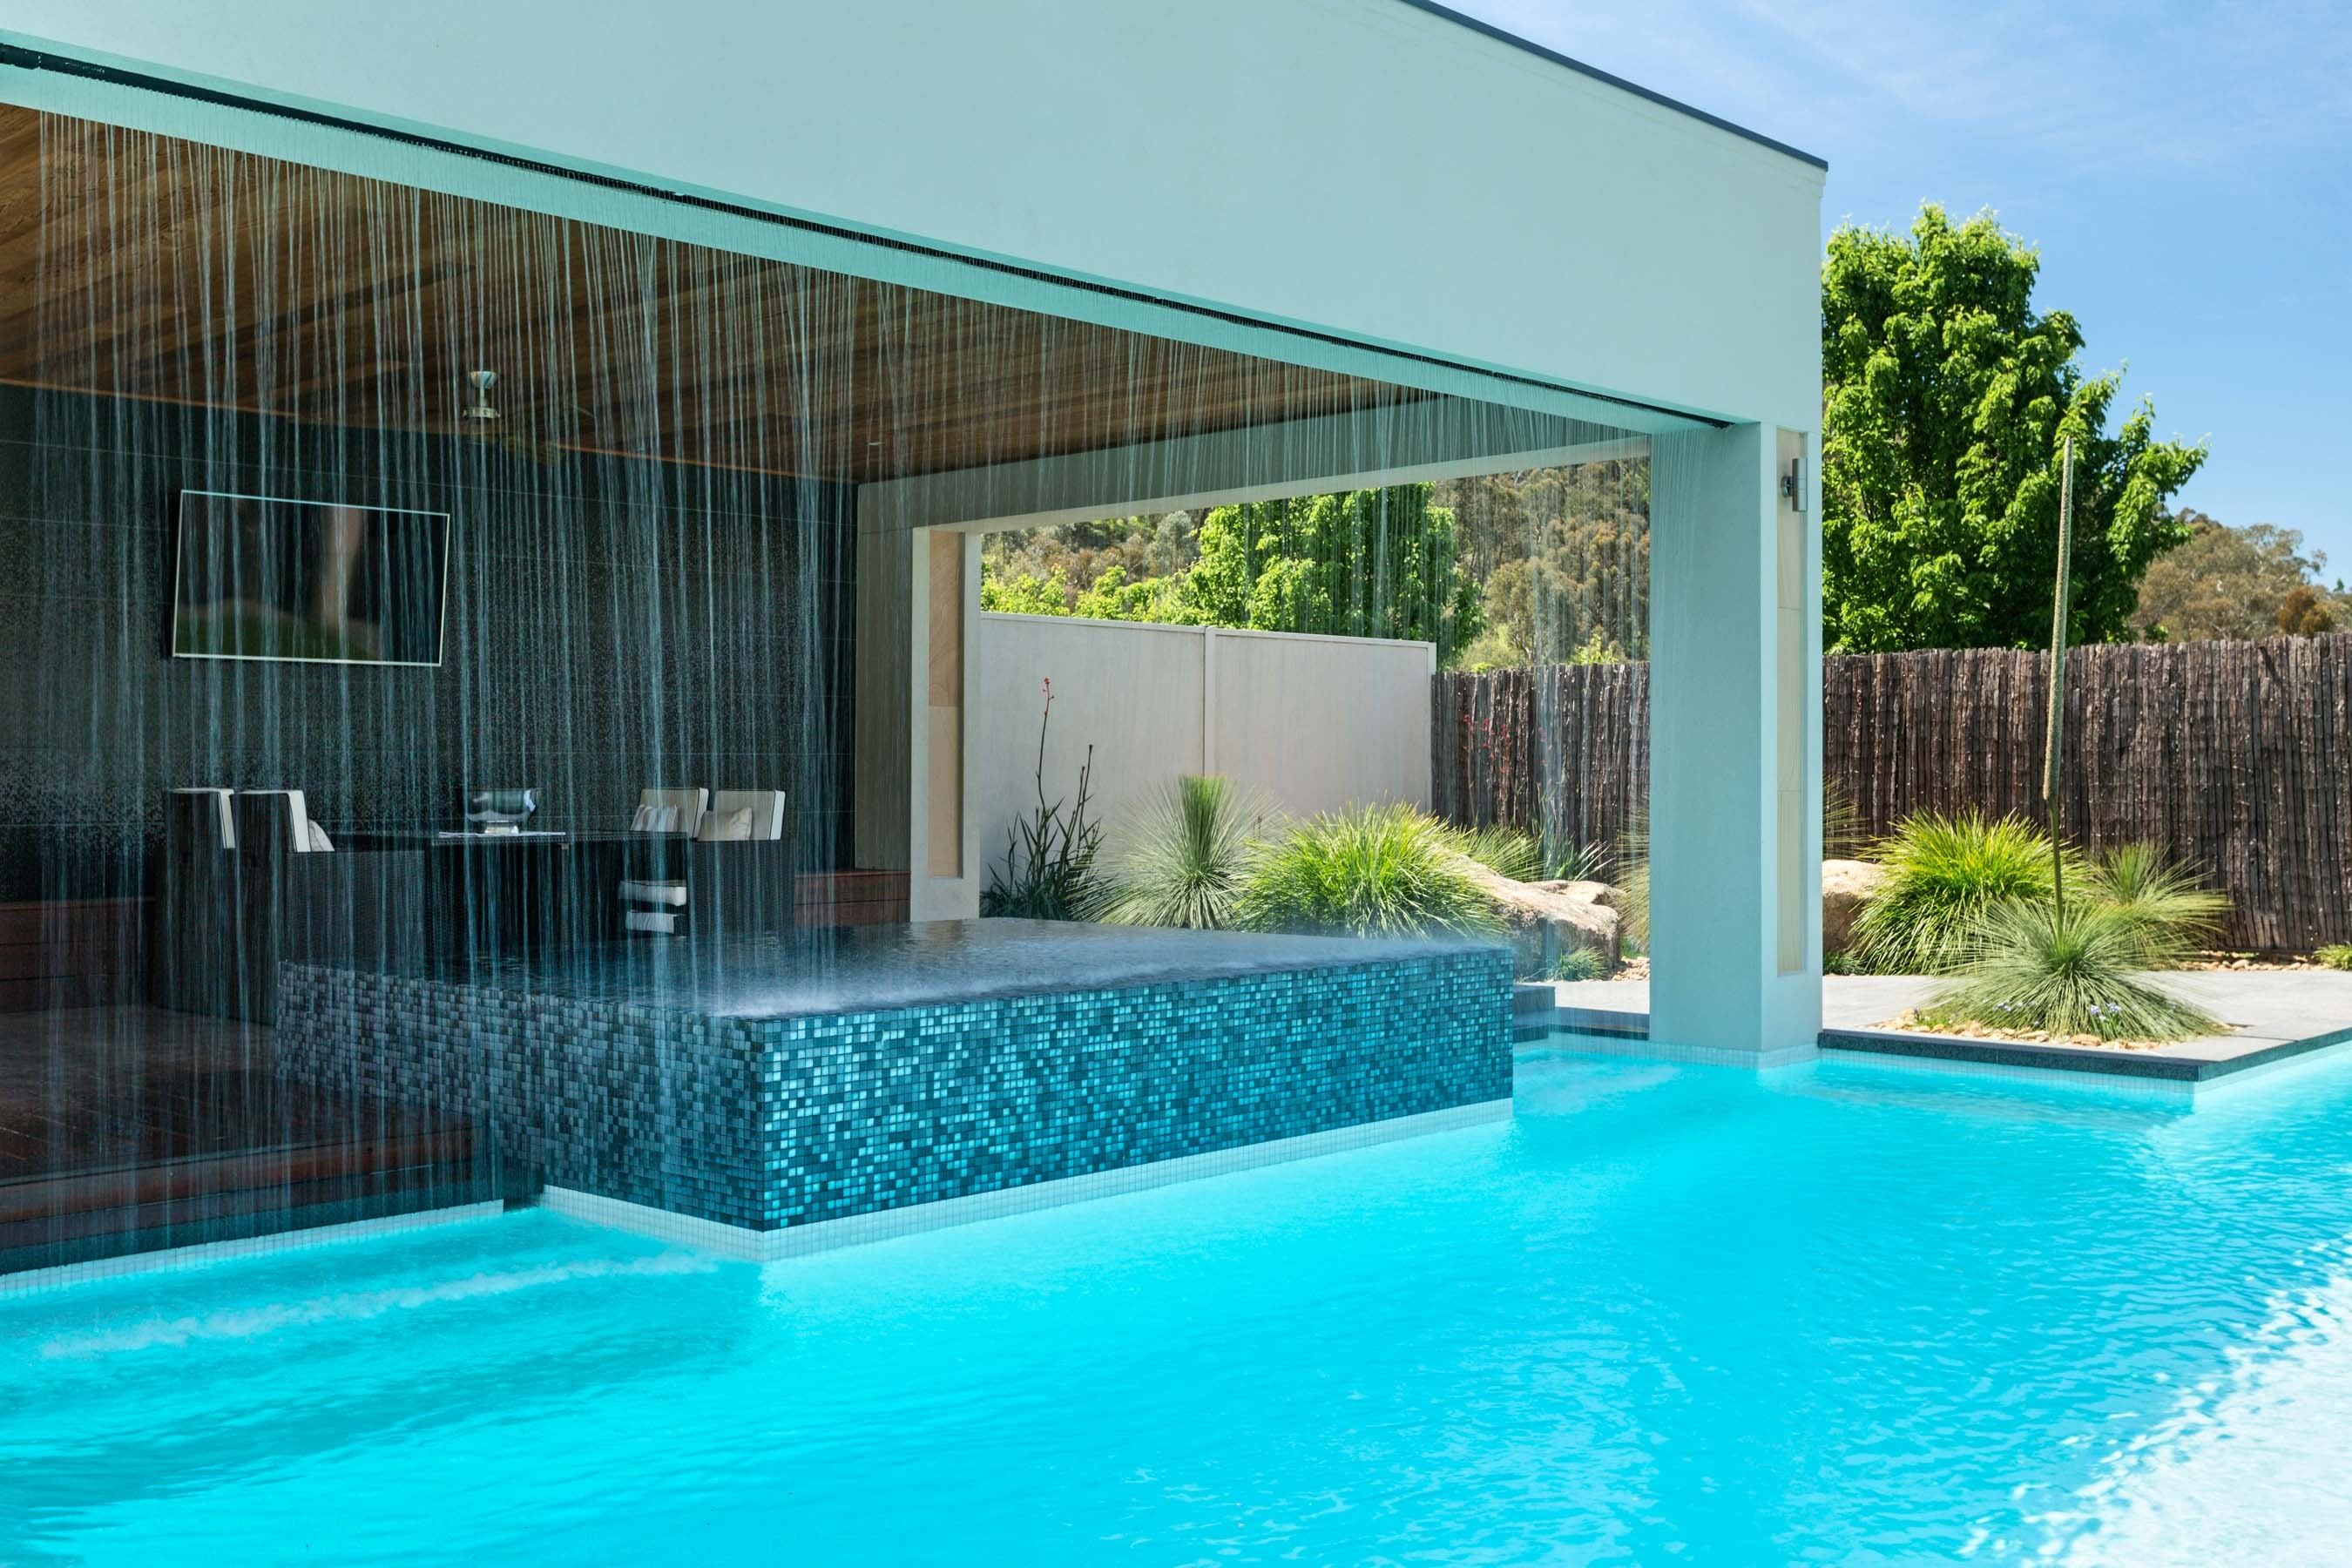 Pool-Tiles Gallery Luxe eclipse-01